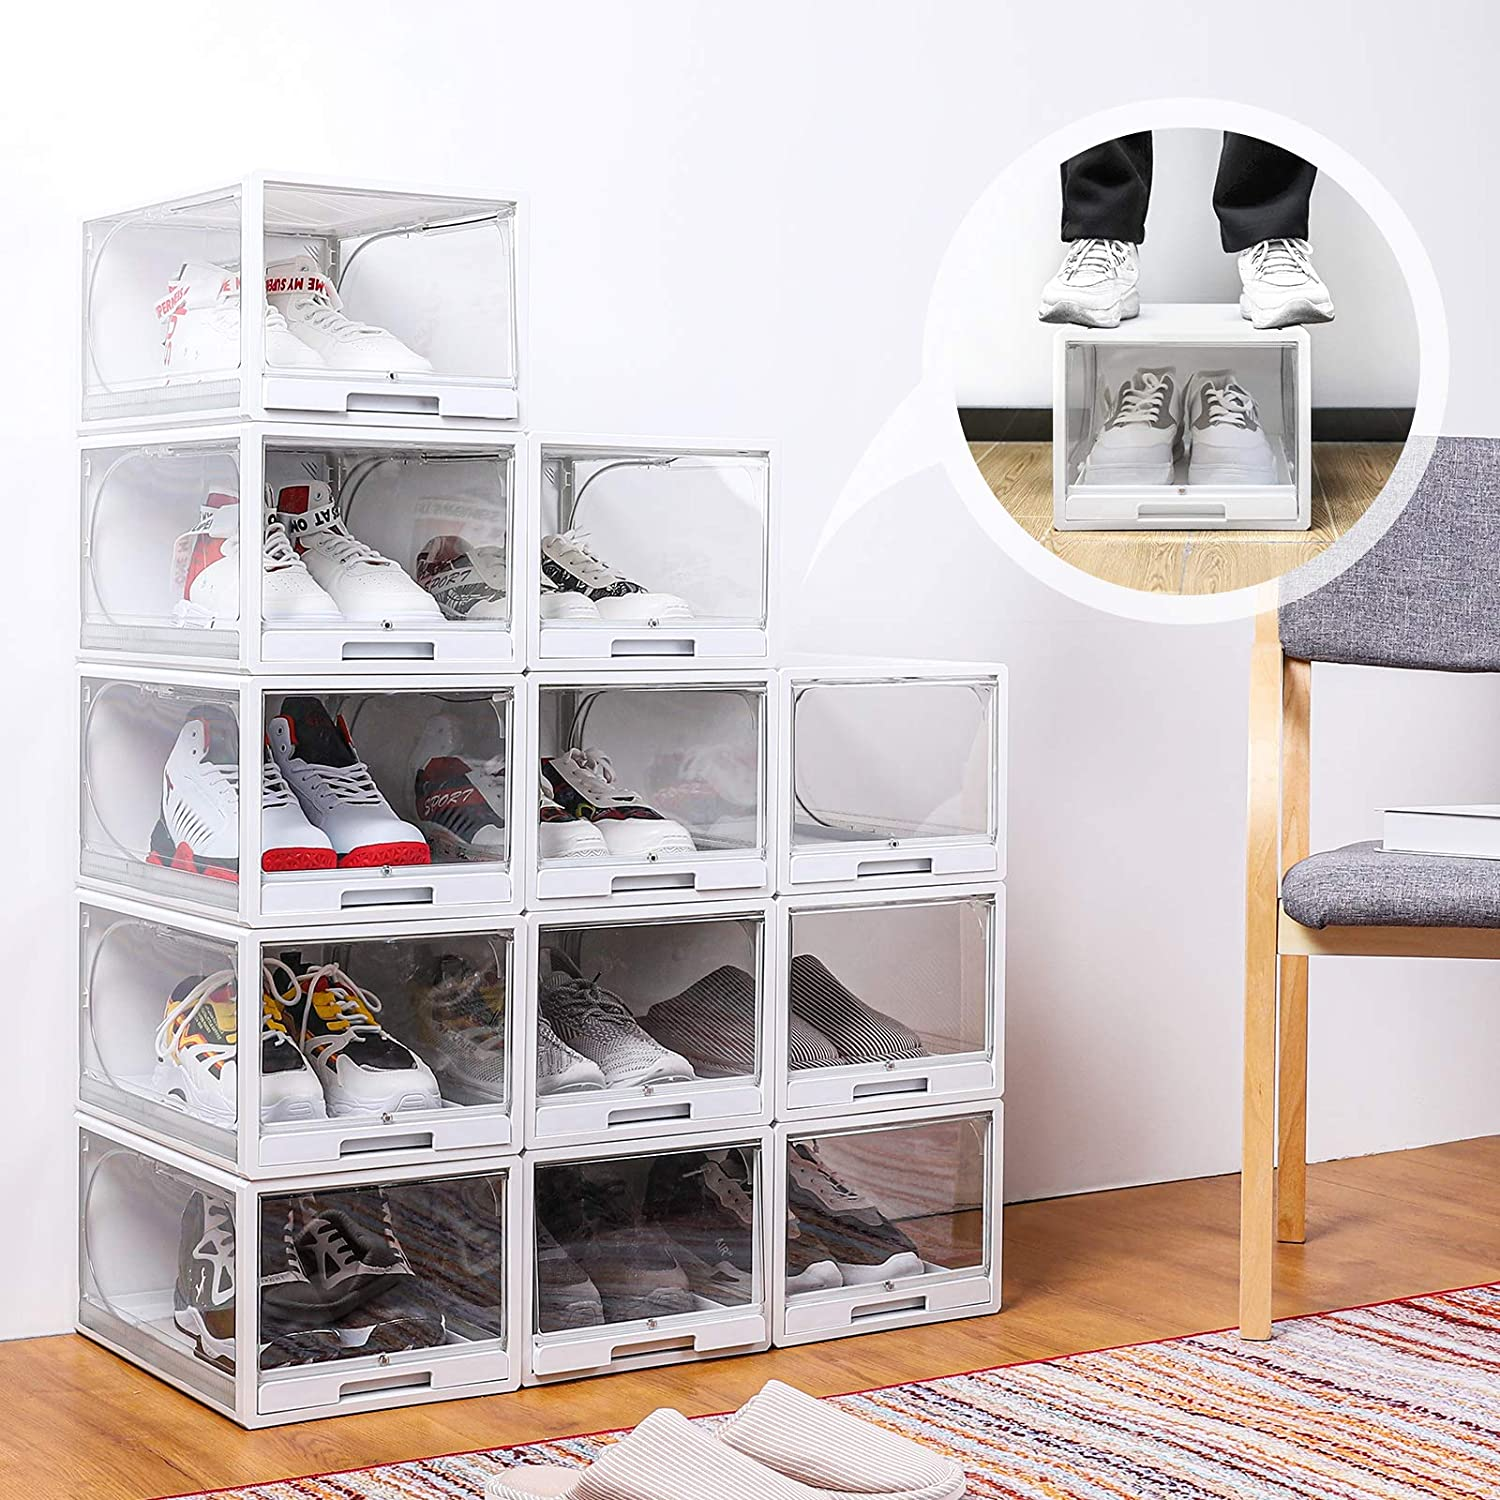 Homde Reinforced Shoe Organizer 20 Pack Drawer Type Shoe Box Clear Stackable  Shoe Storage for Men and Women Size Up to US 20 Easy to Open without ...